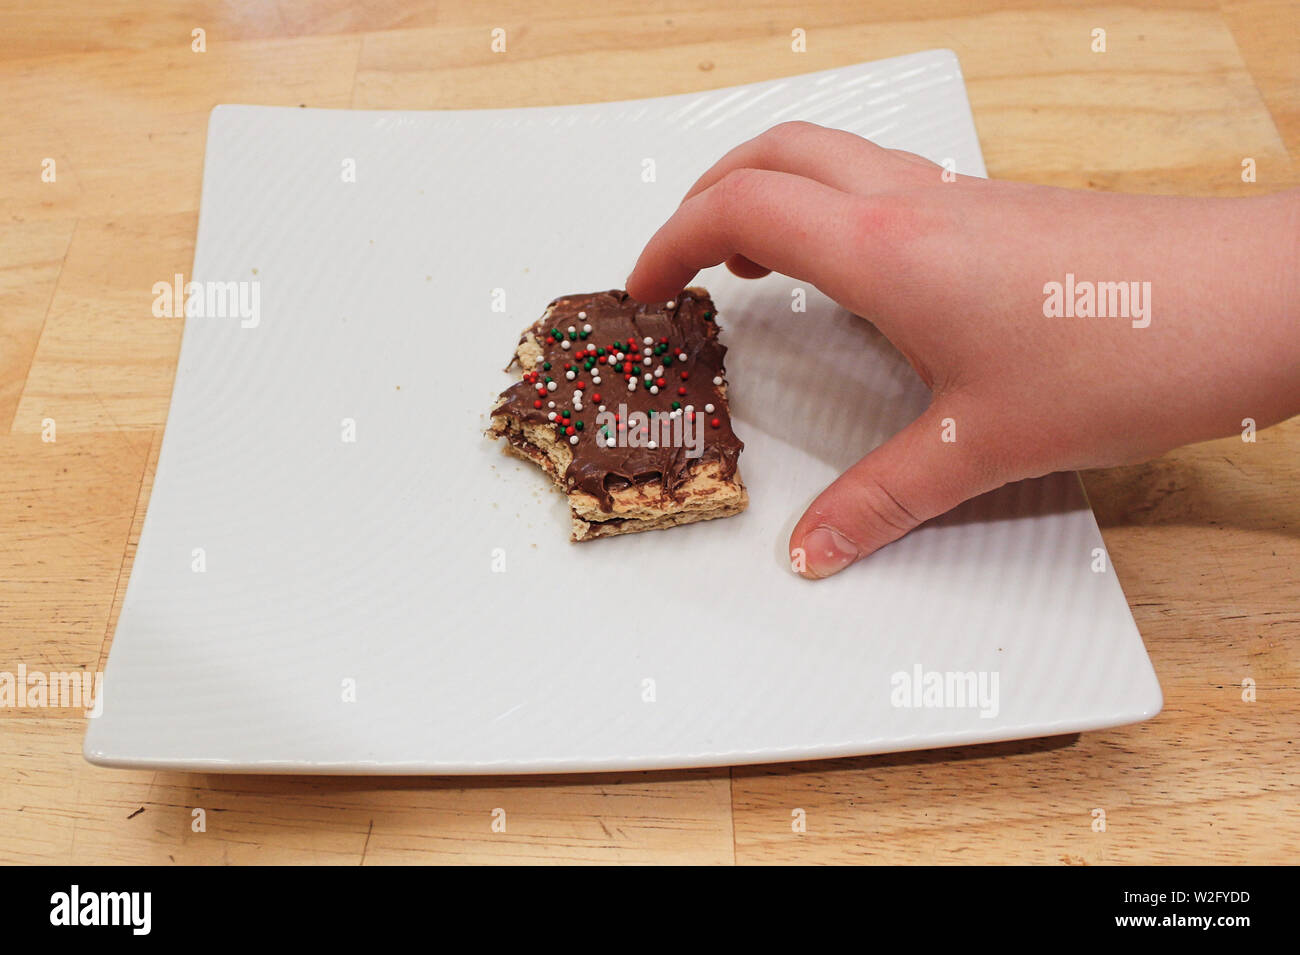 A childs hand grabing a treat off a white plate Stock Photo